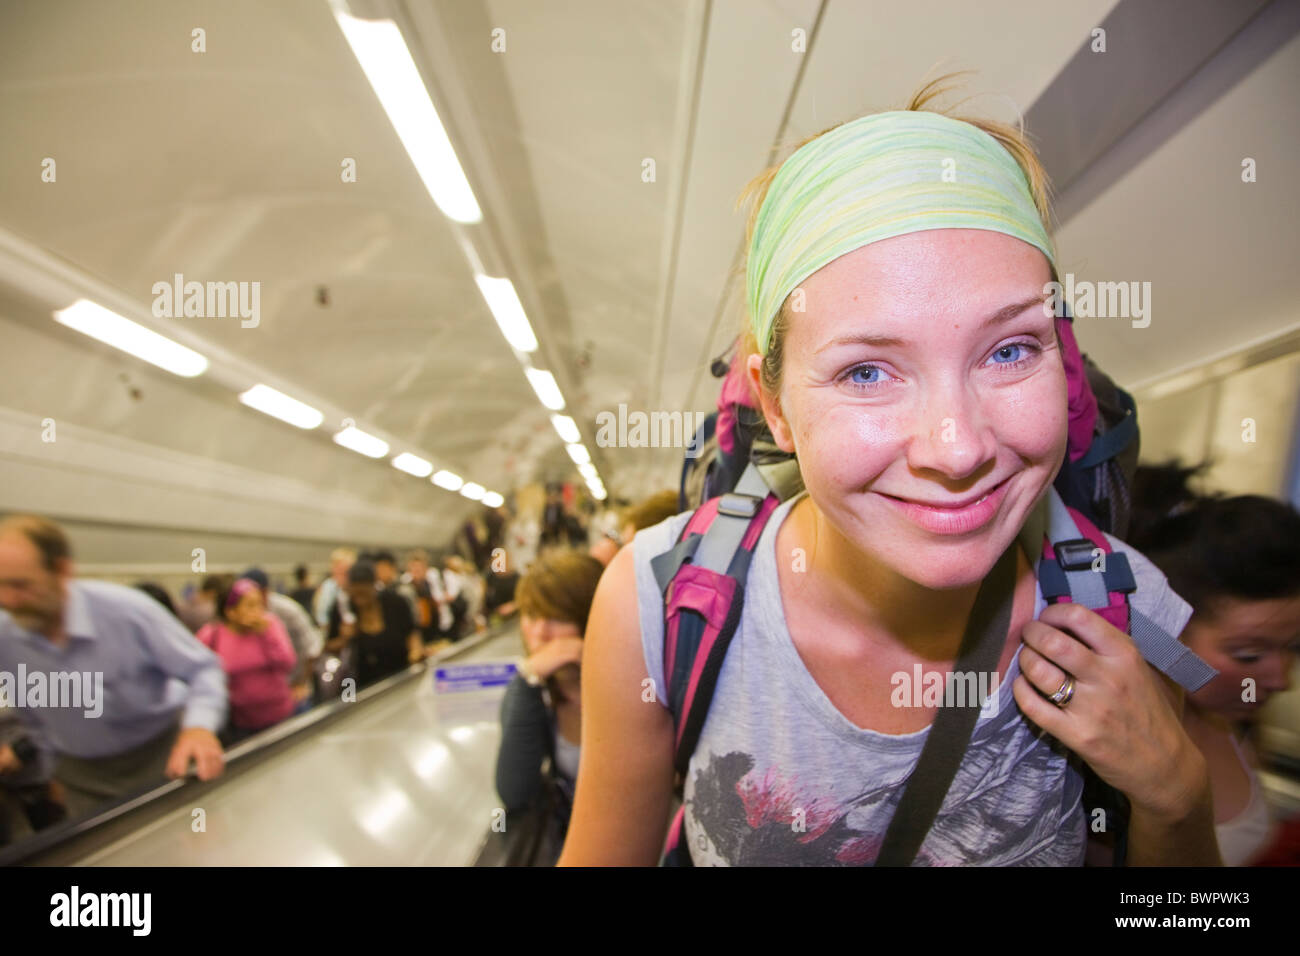 Backpacker sur l'escalator du métro de Londres Photo Stock